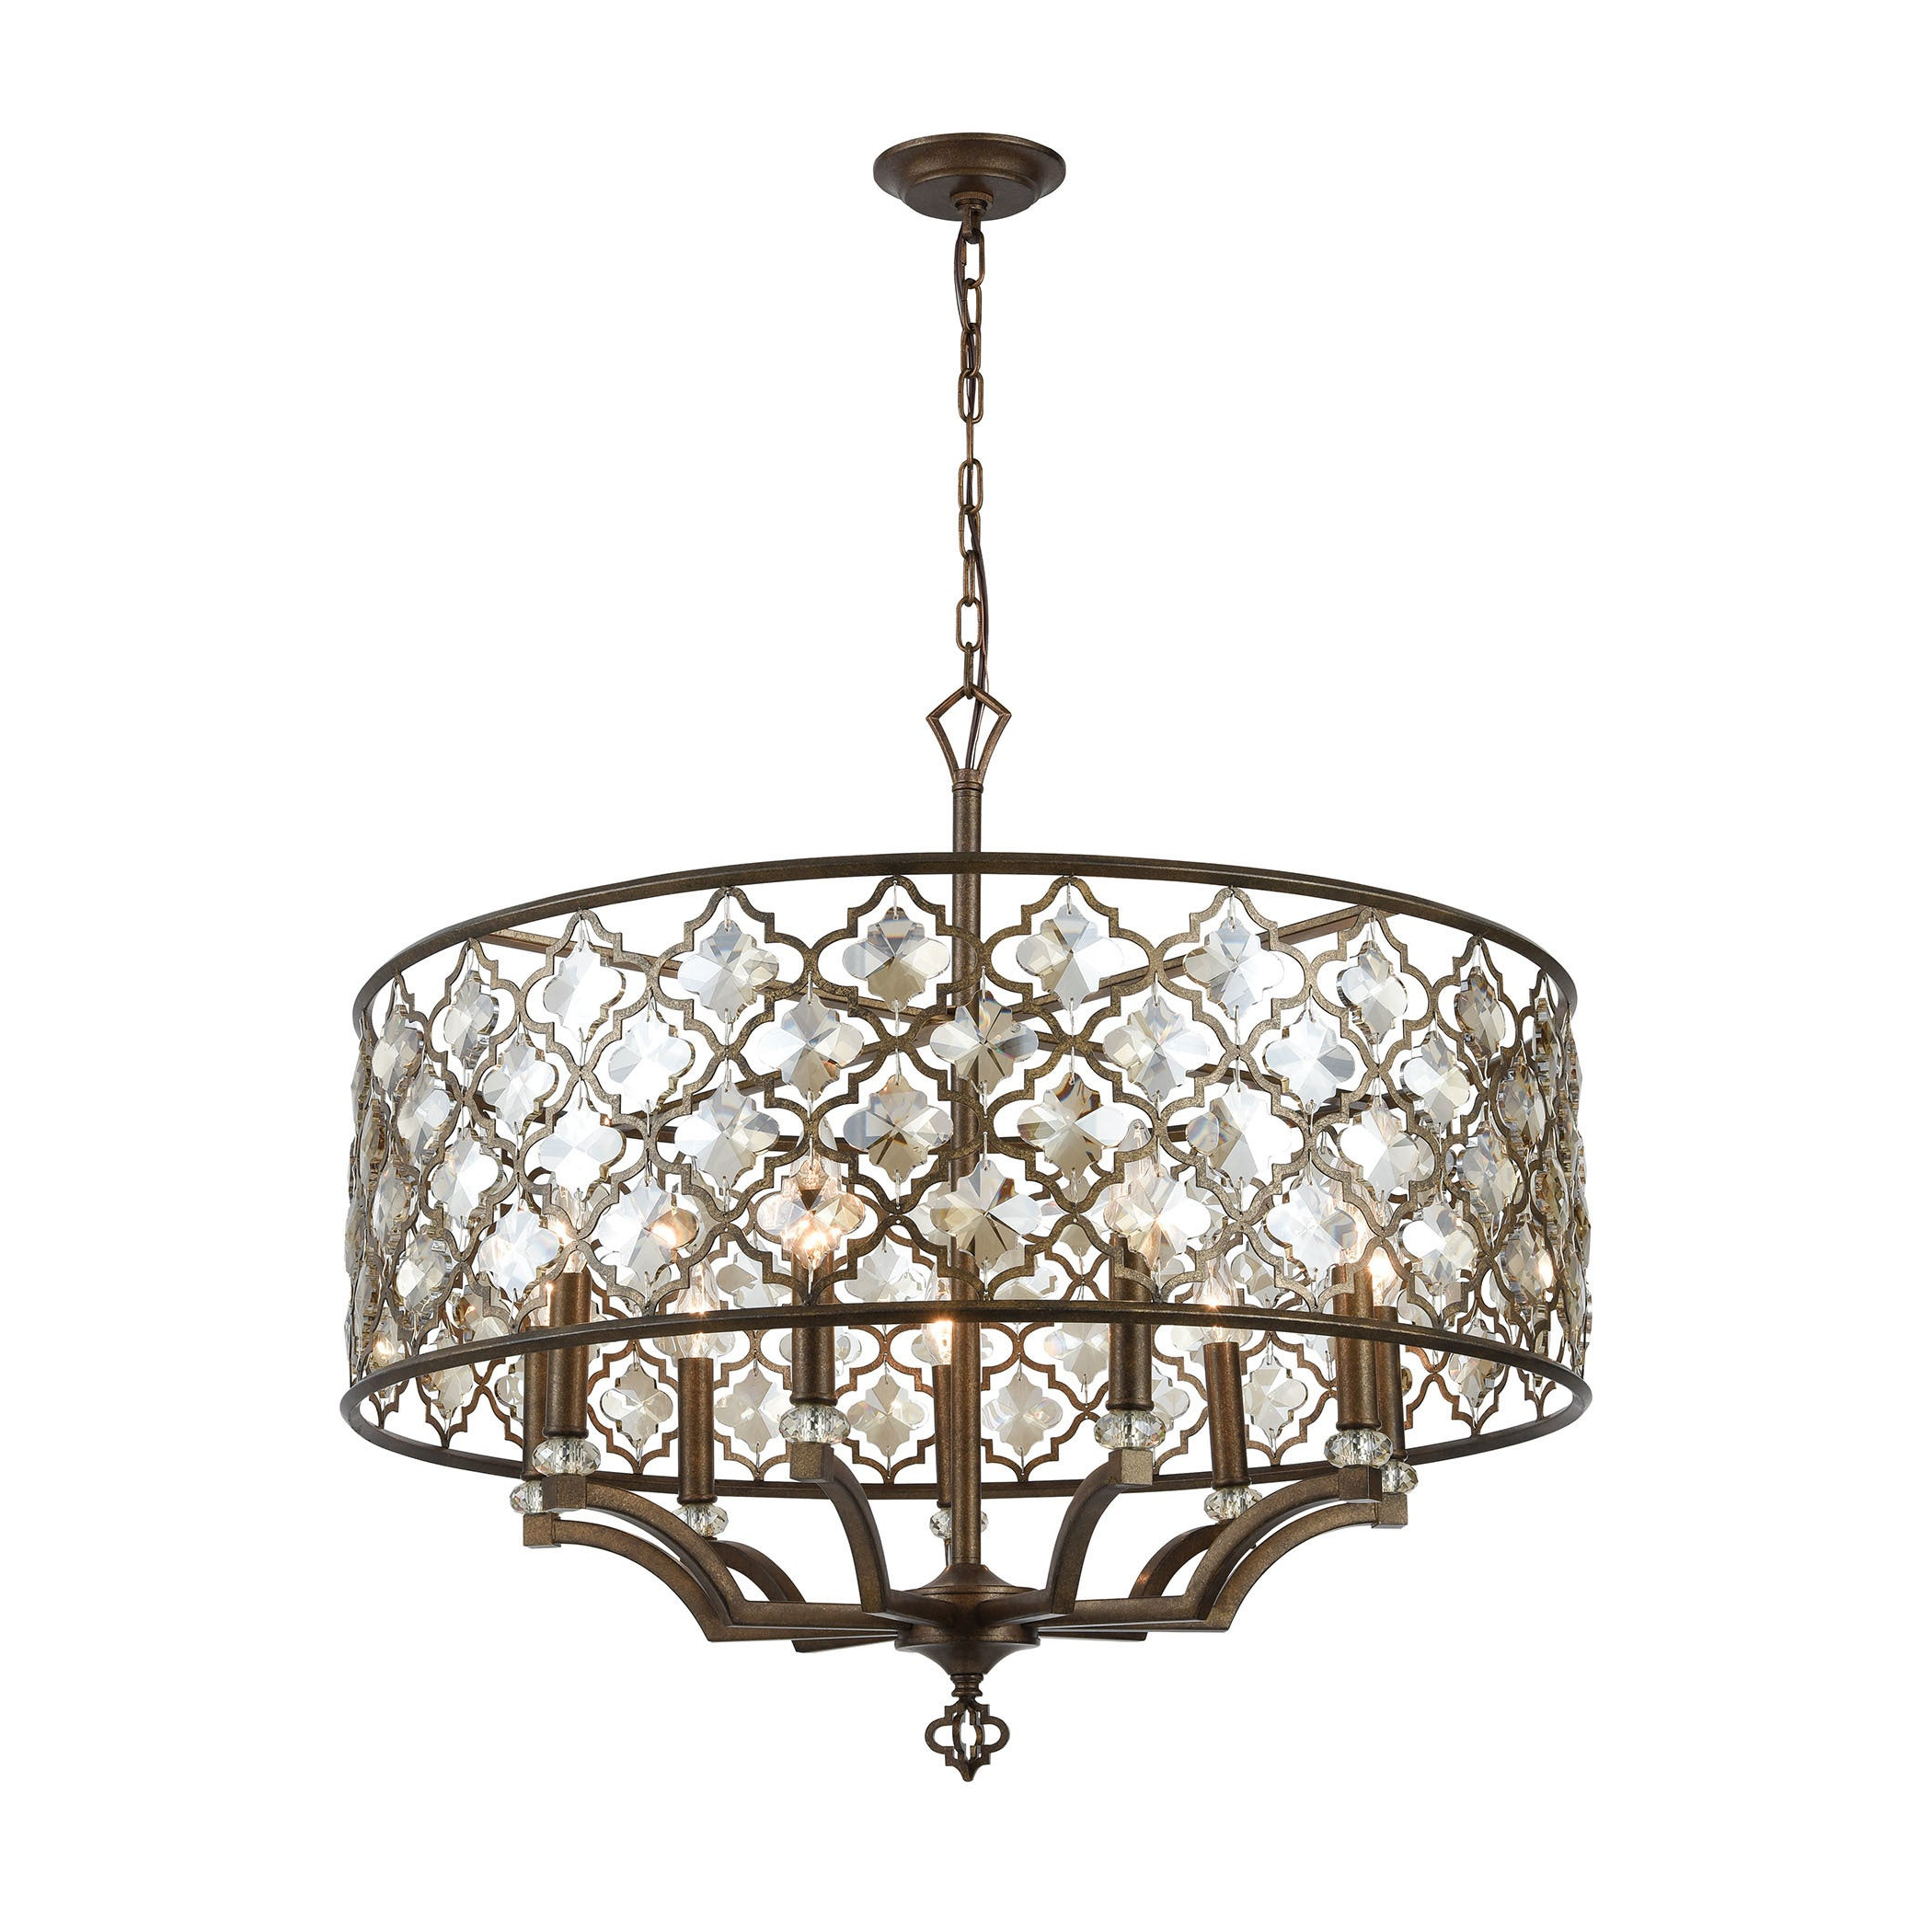 Best and Newest Armande 4-Light Lantern Drum Pendants with Armand 9-Light Pendant, Weathered Bronze